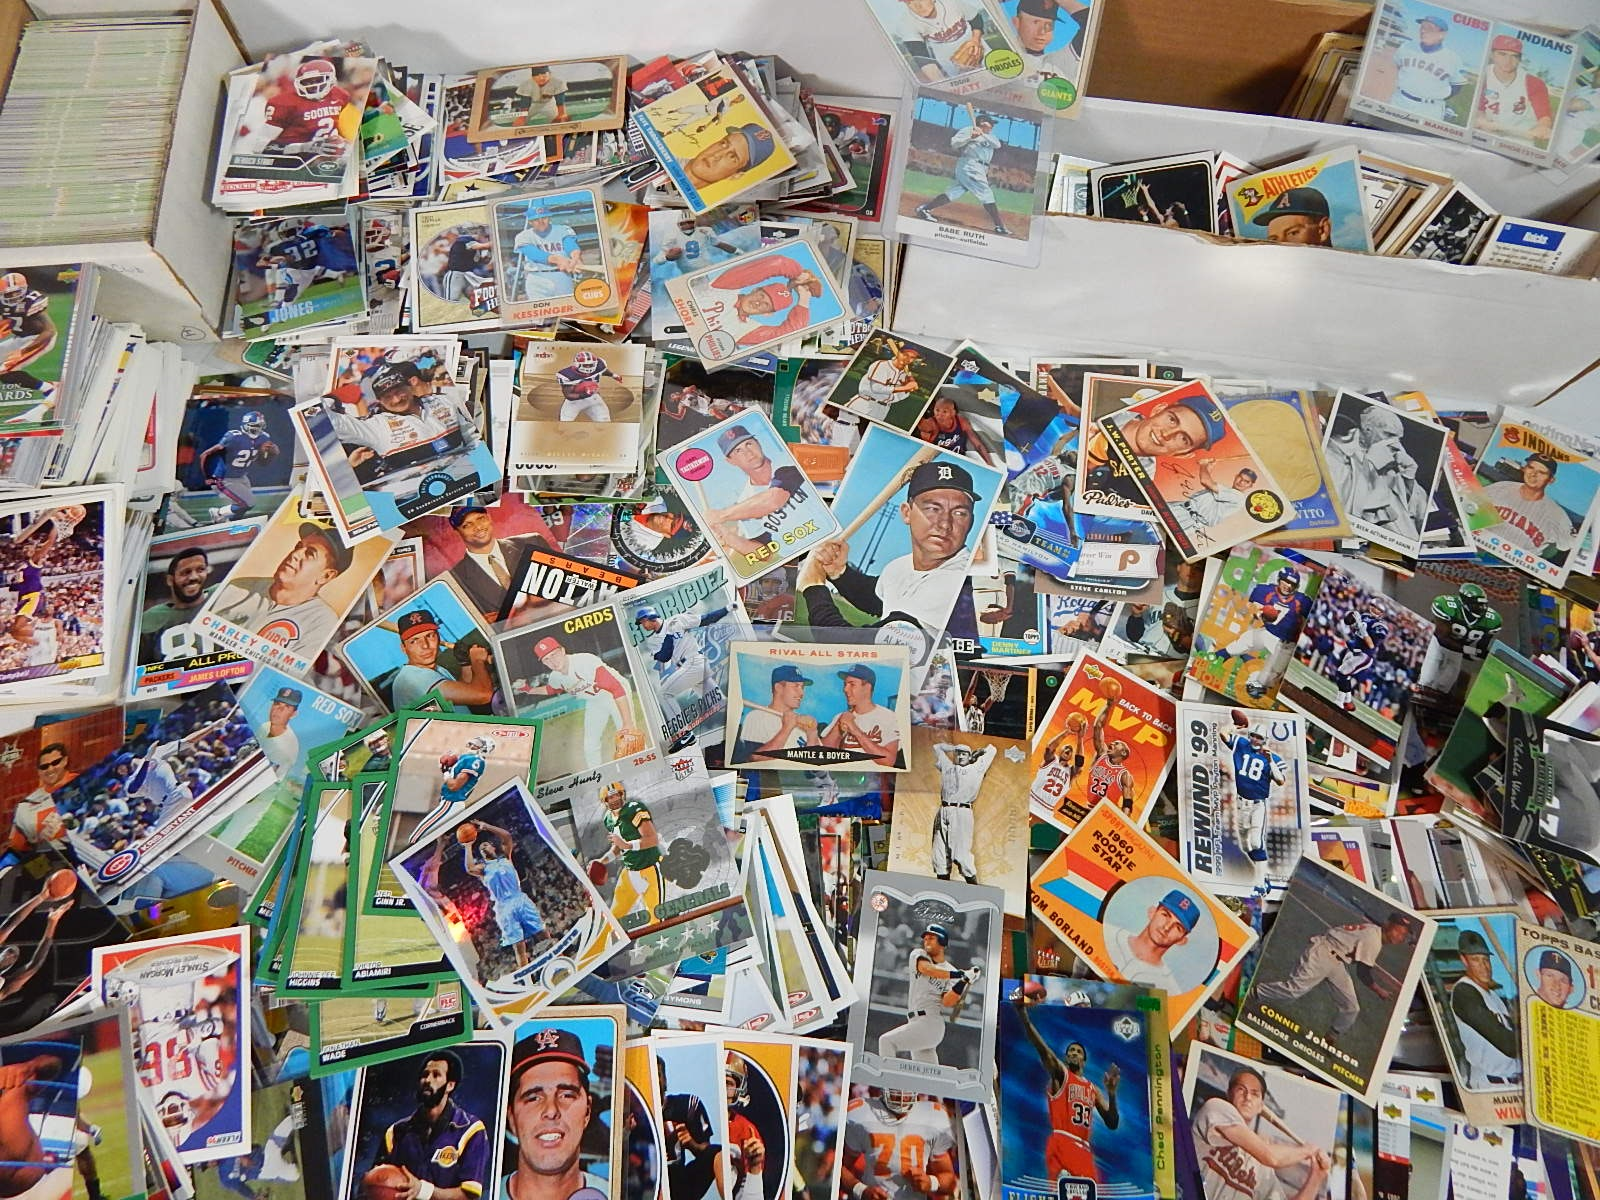 Large Sports Card Collection from 1950s through 2000s